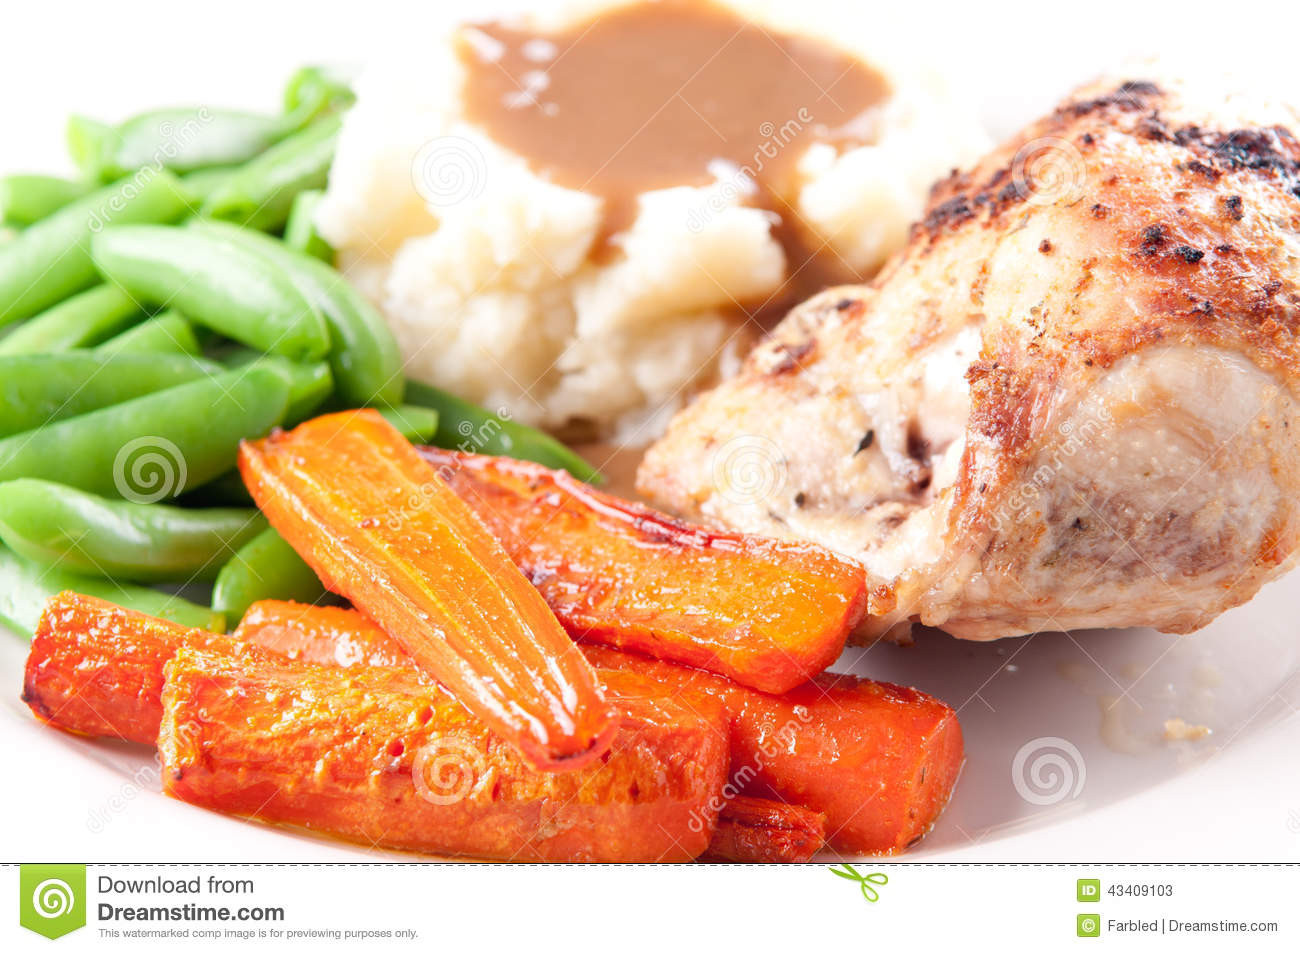 Roasted Chicken Breast And Vegetables  Roasted Chicken Breast Mashed Potatoes Gravy And Fresh